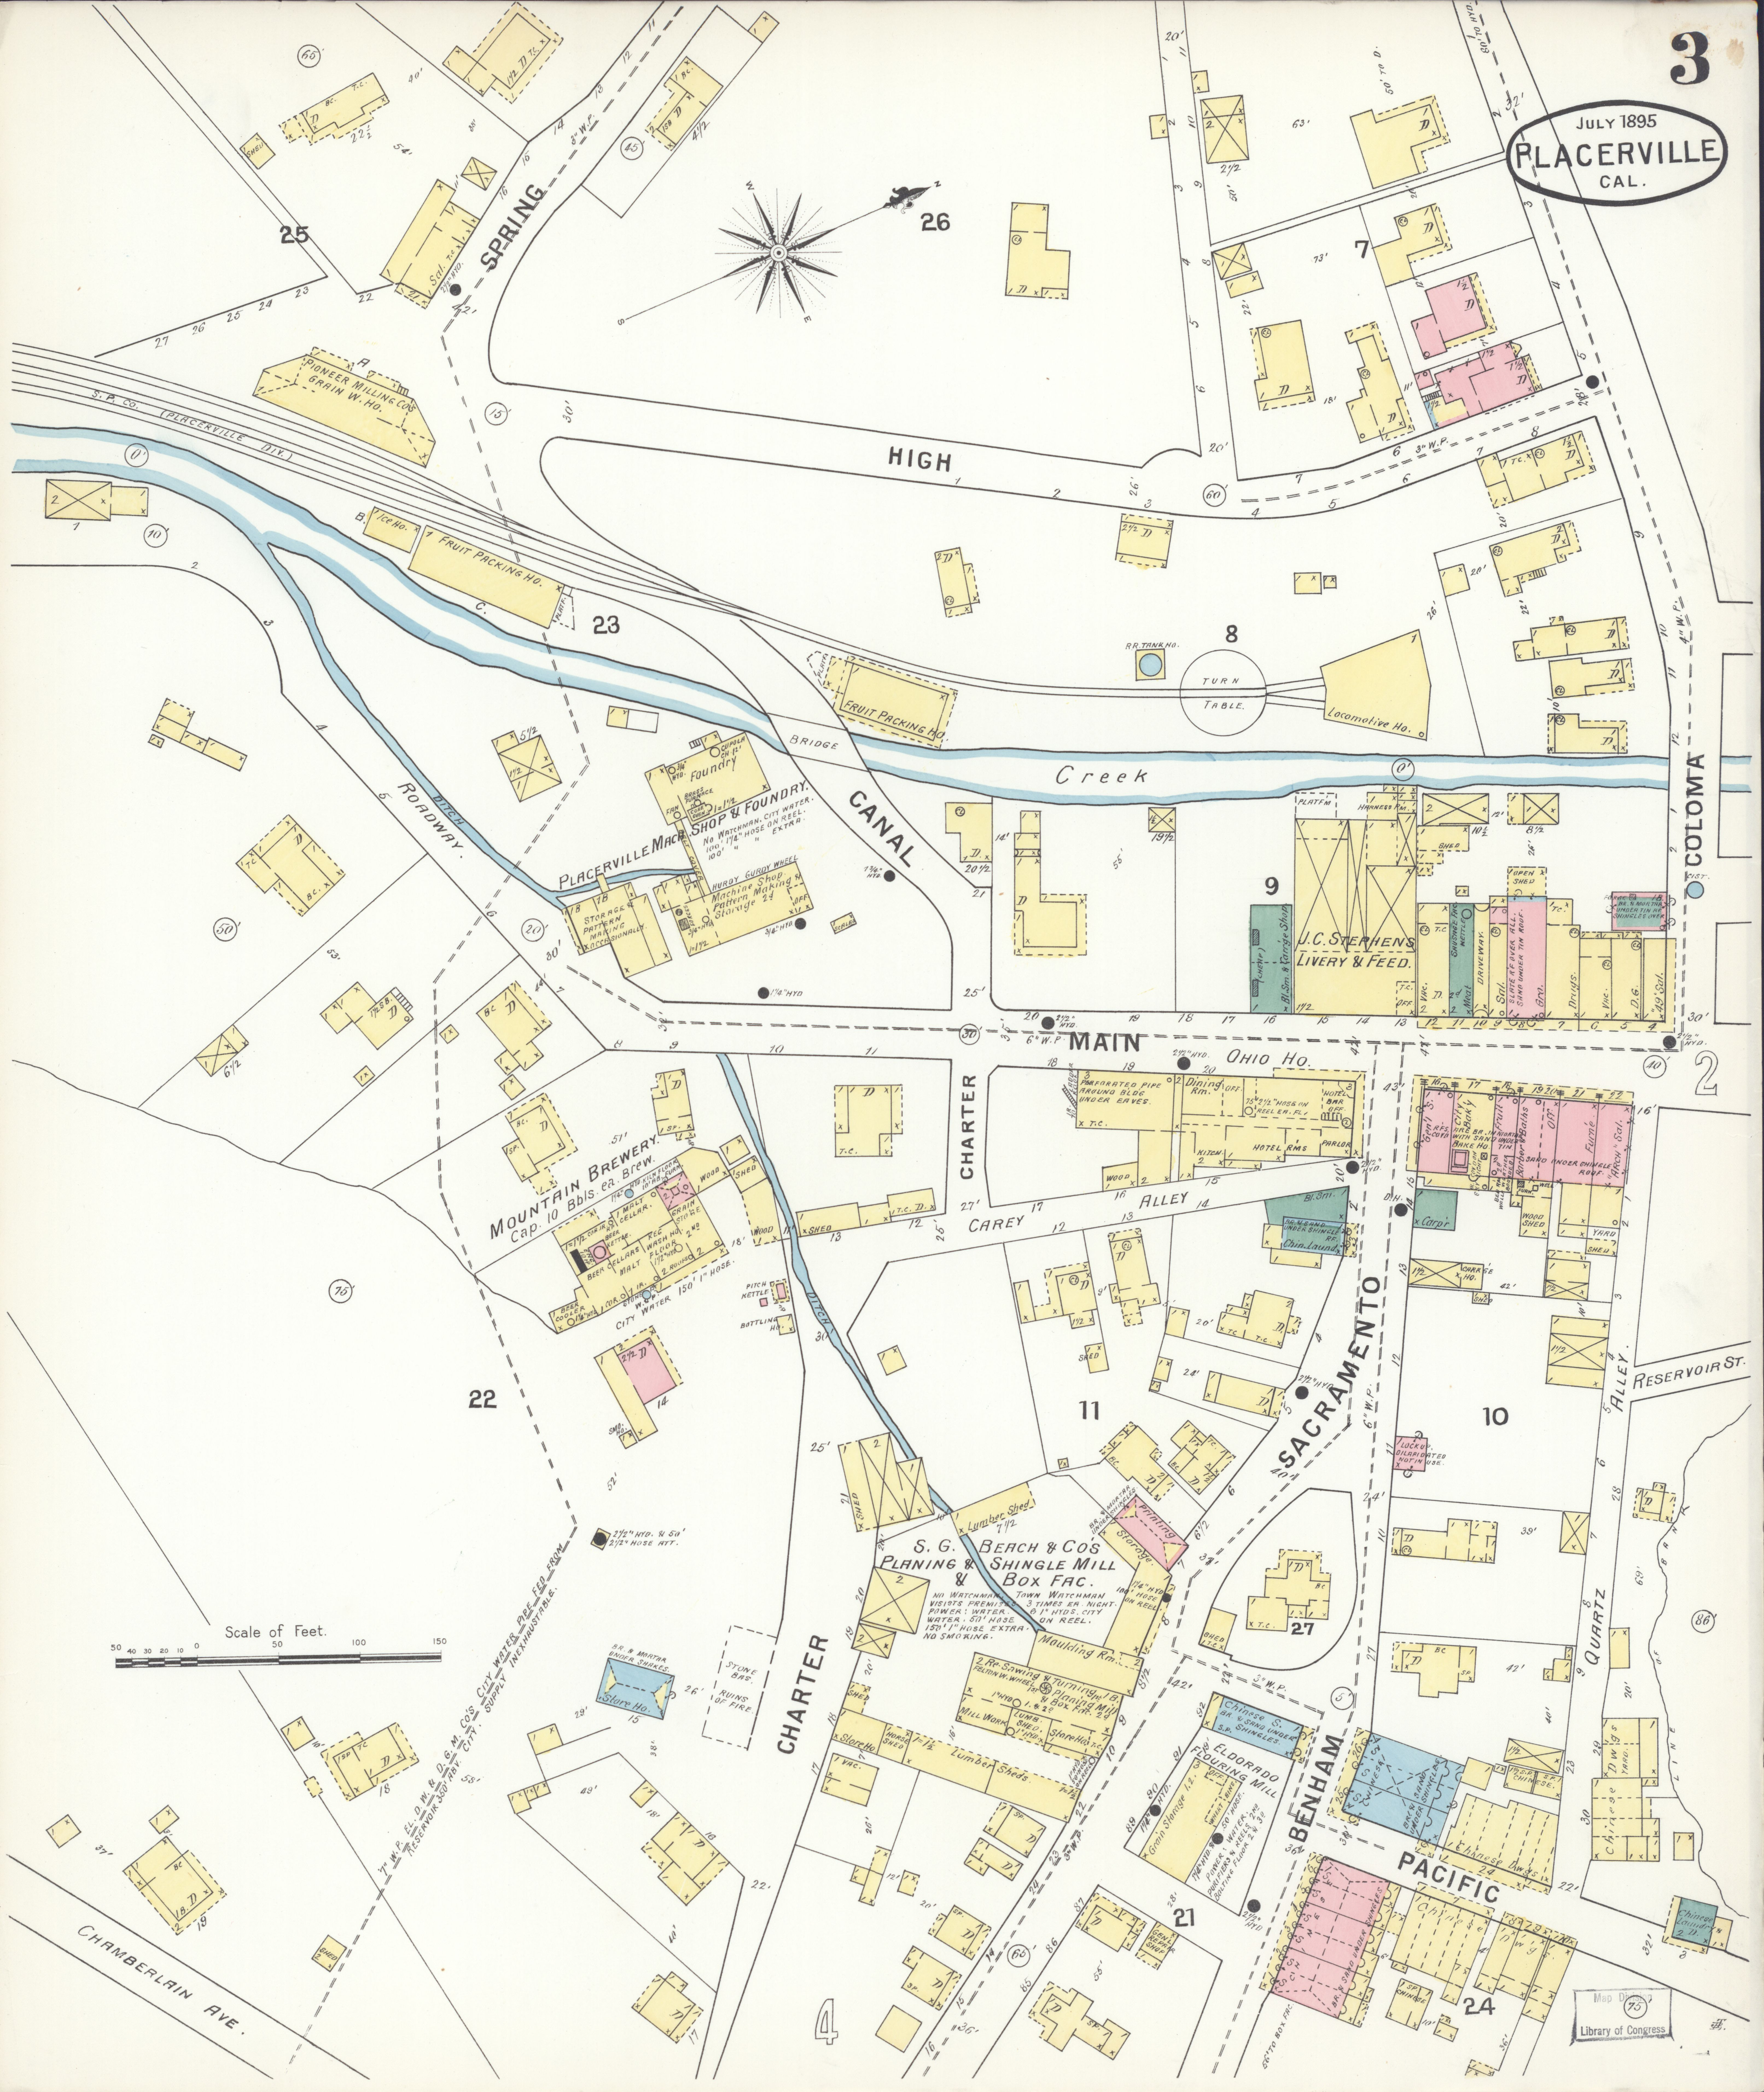 Placerville California Map.File Sanborn Fire Insurance Map From Placerville El Dorado County